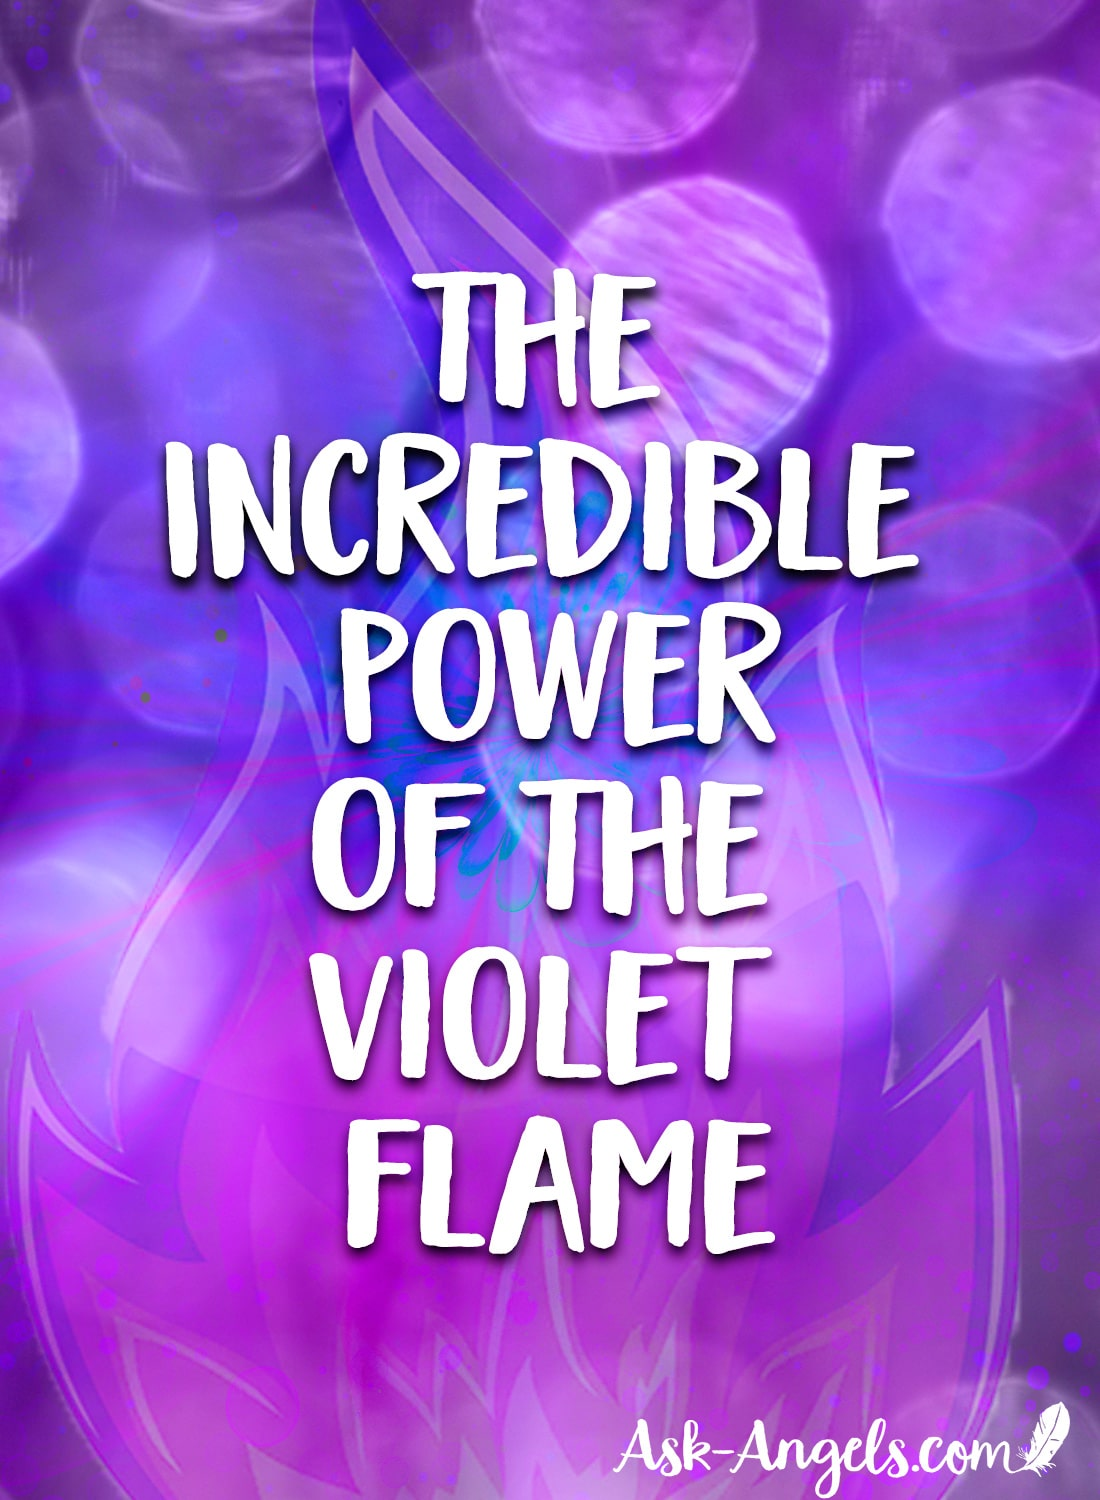 The energy of the Violet Flame is truly incredible!